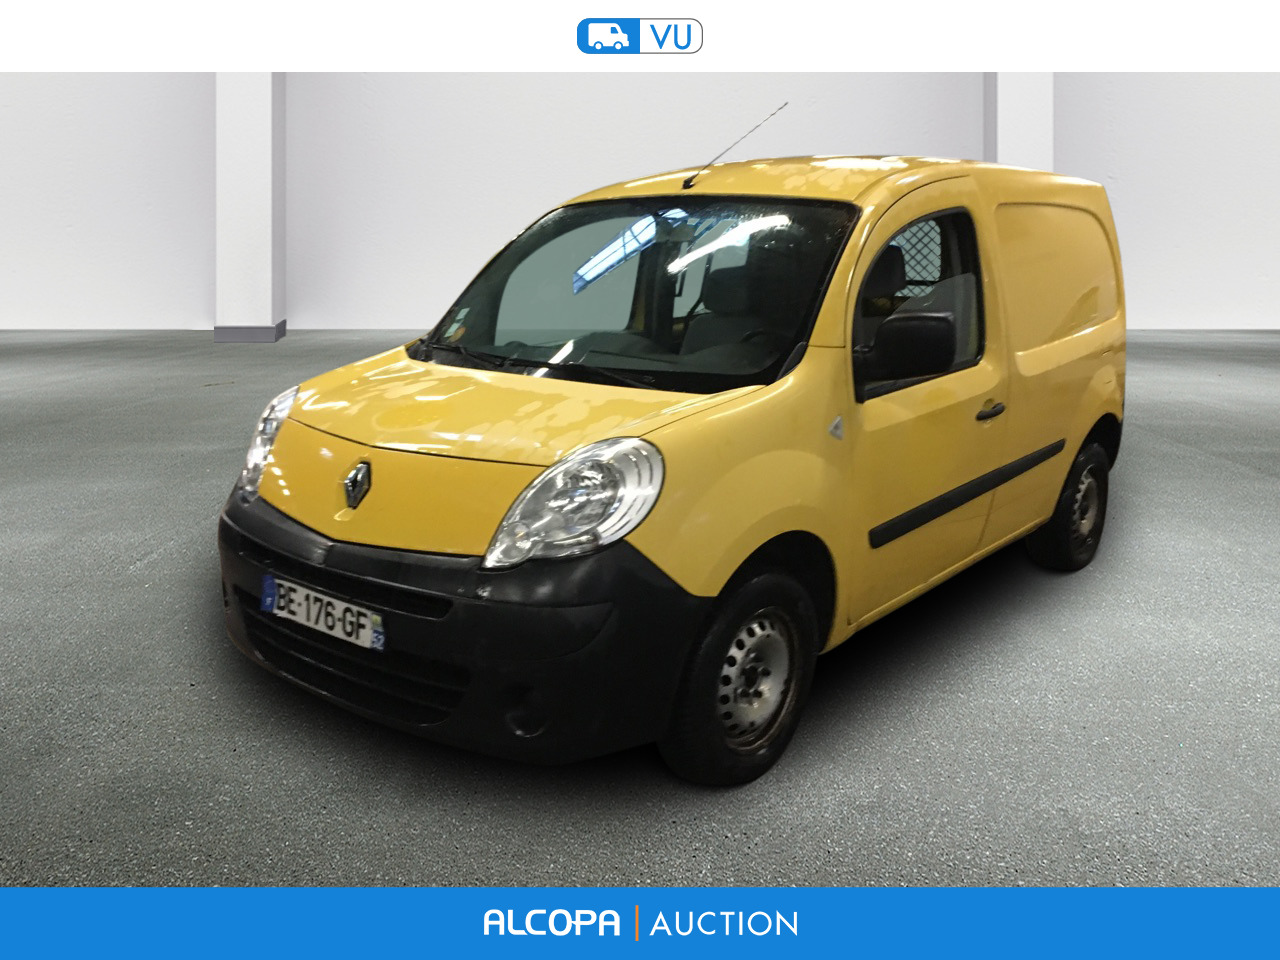 renault kangoo express 12 2007 02 2013 kangoo express l1 1 5 dci 70 alcopa auction. Black Bedroom Furniture Sets. Home Design Ideas